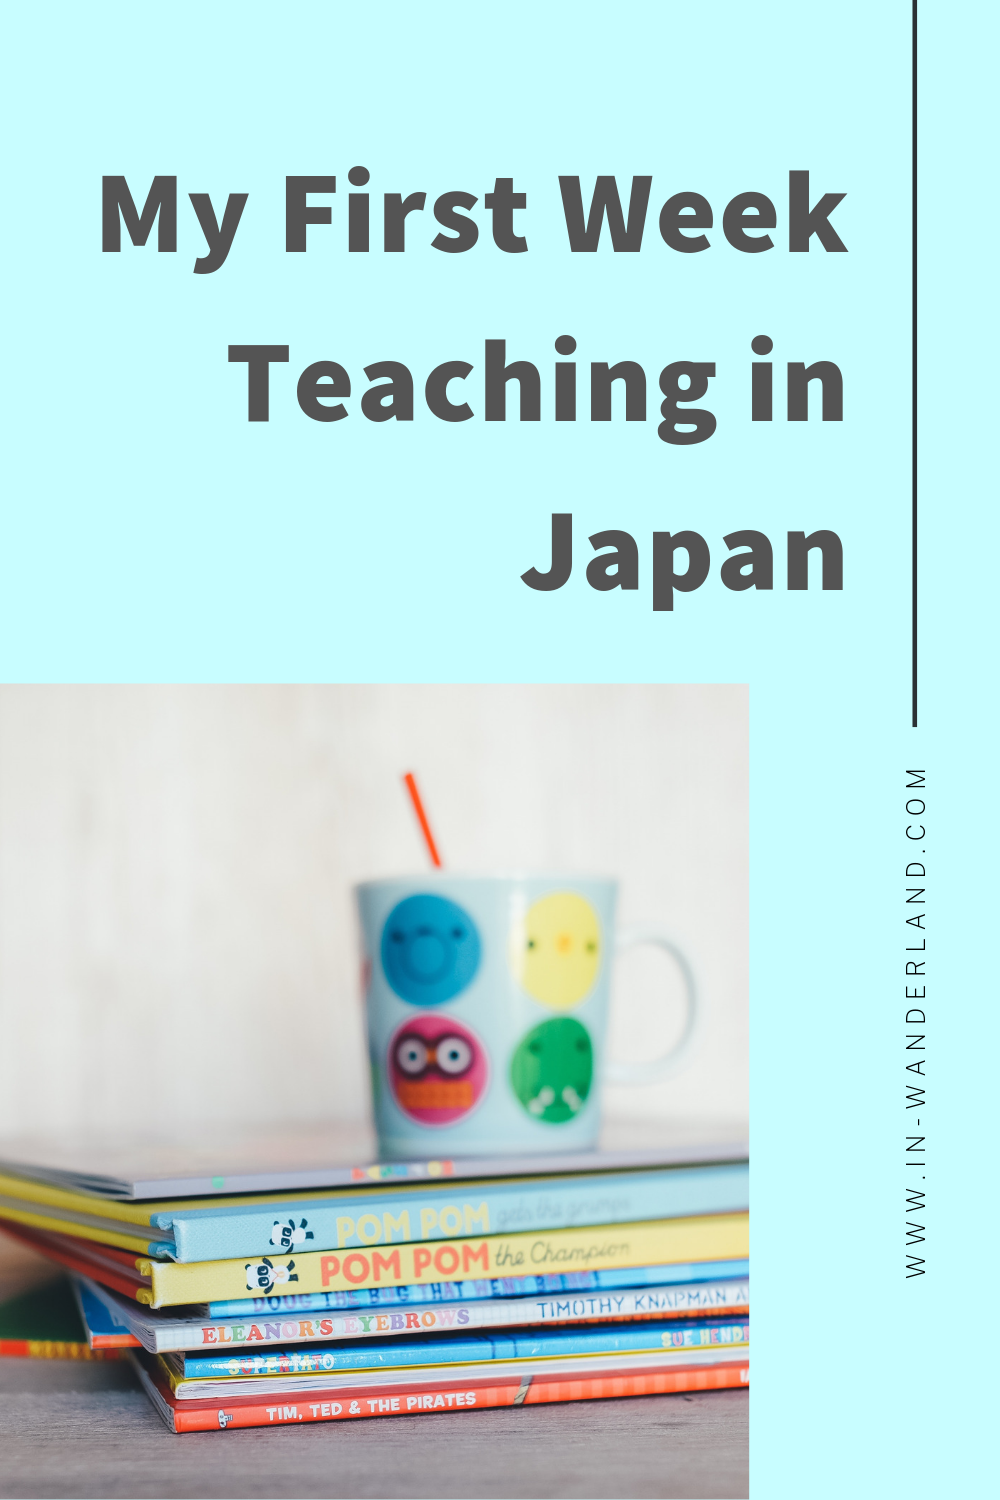 My First Week Teaching Junior High School English in Japan